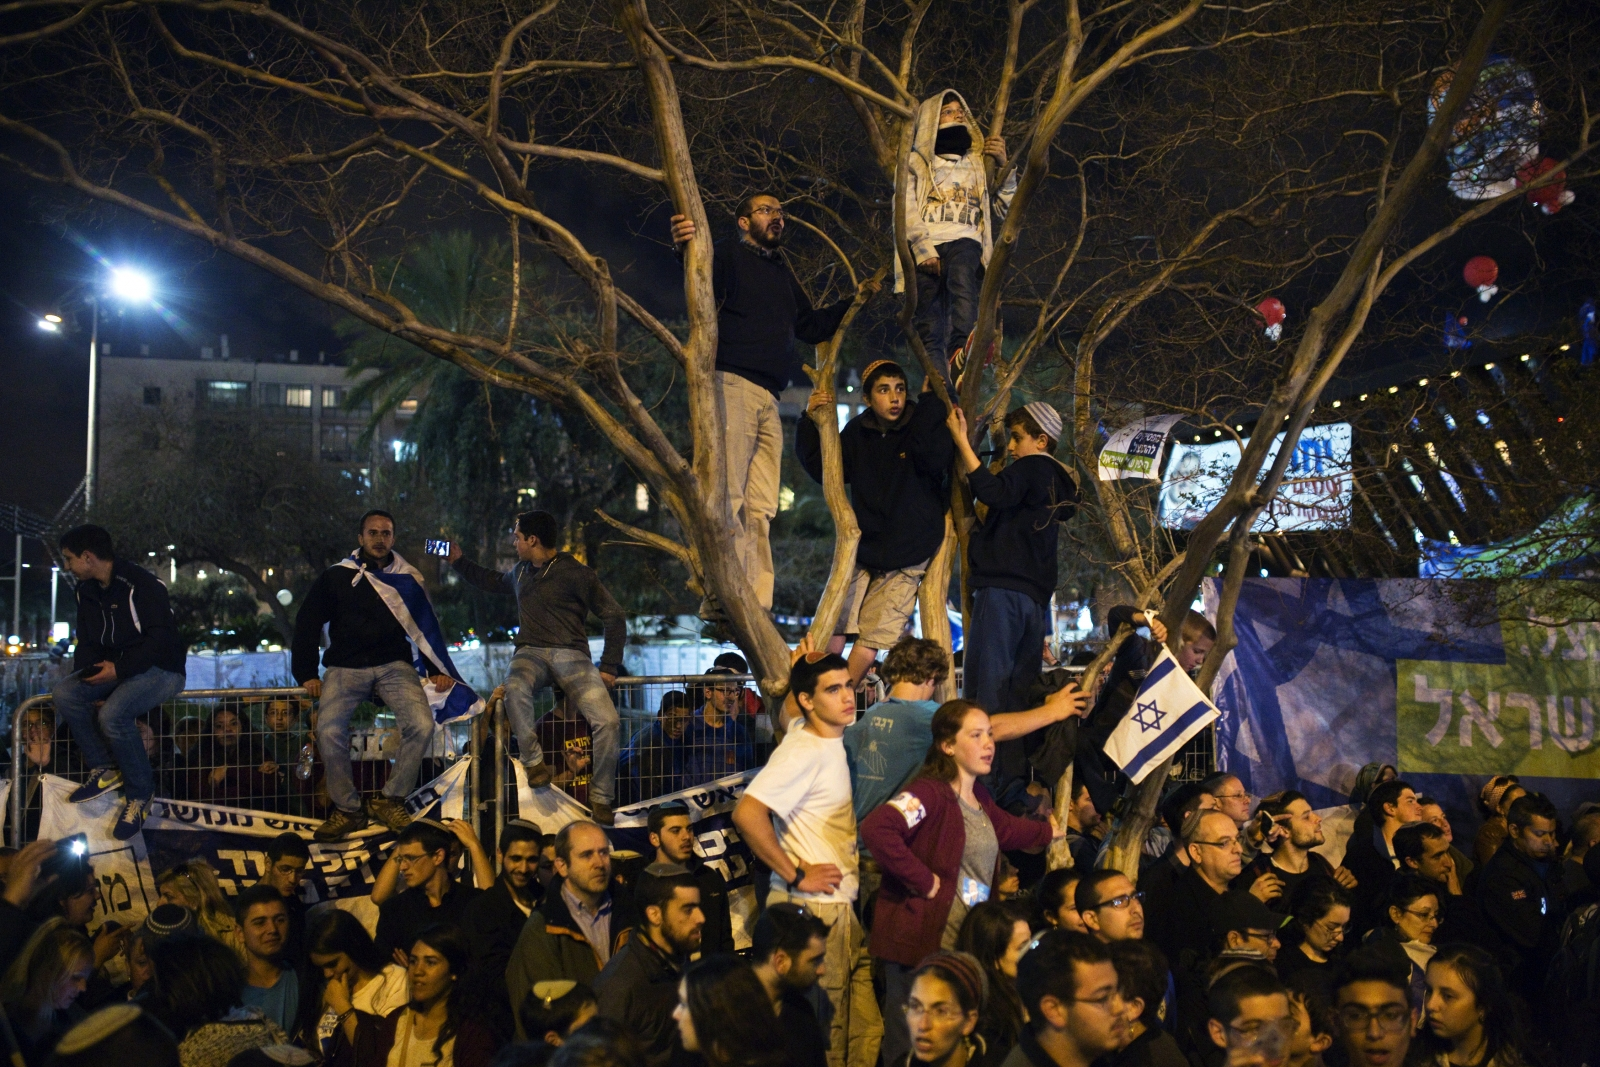 Israel Likud supporters rally